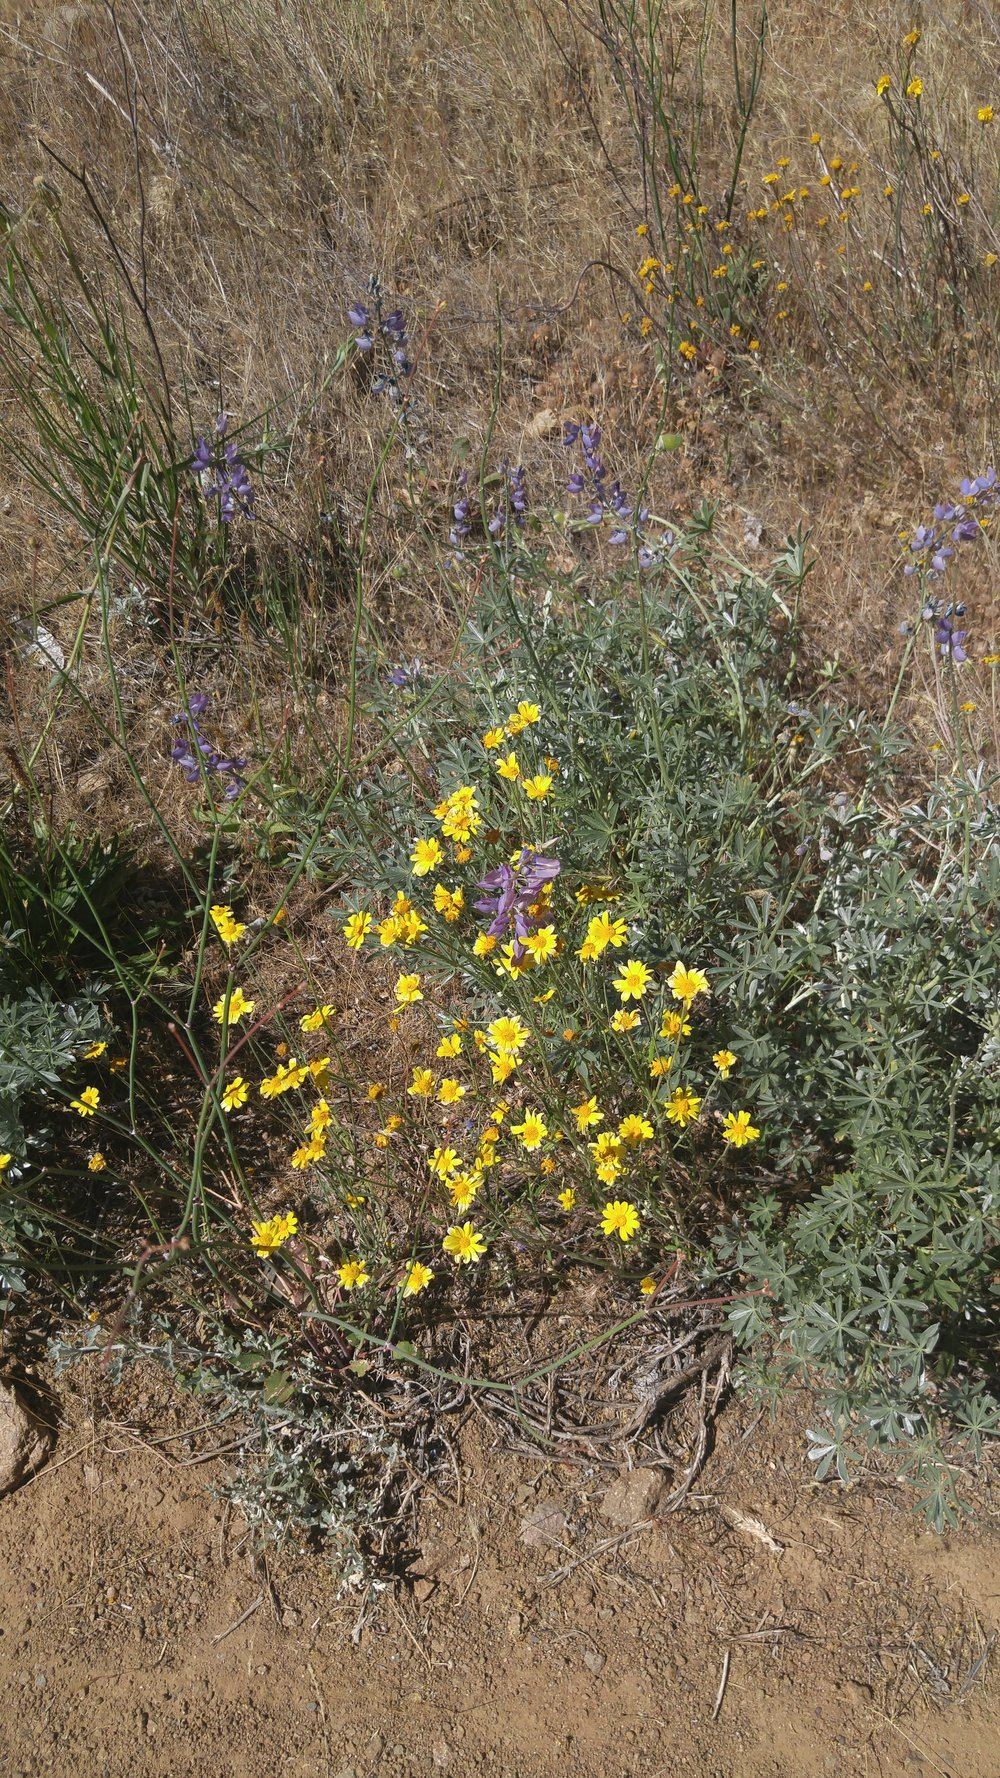 California sunshine ( Eriophyllum lanatum ) and lupine ( Lupinus argentus )